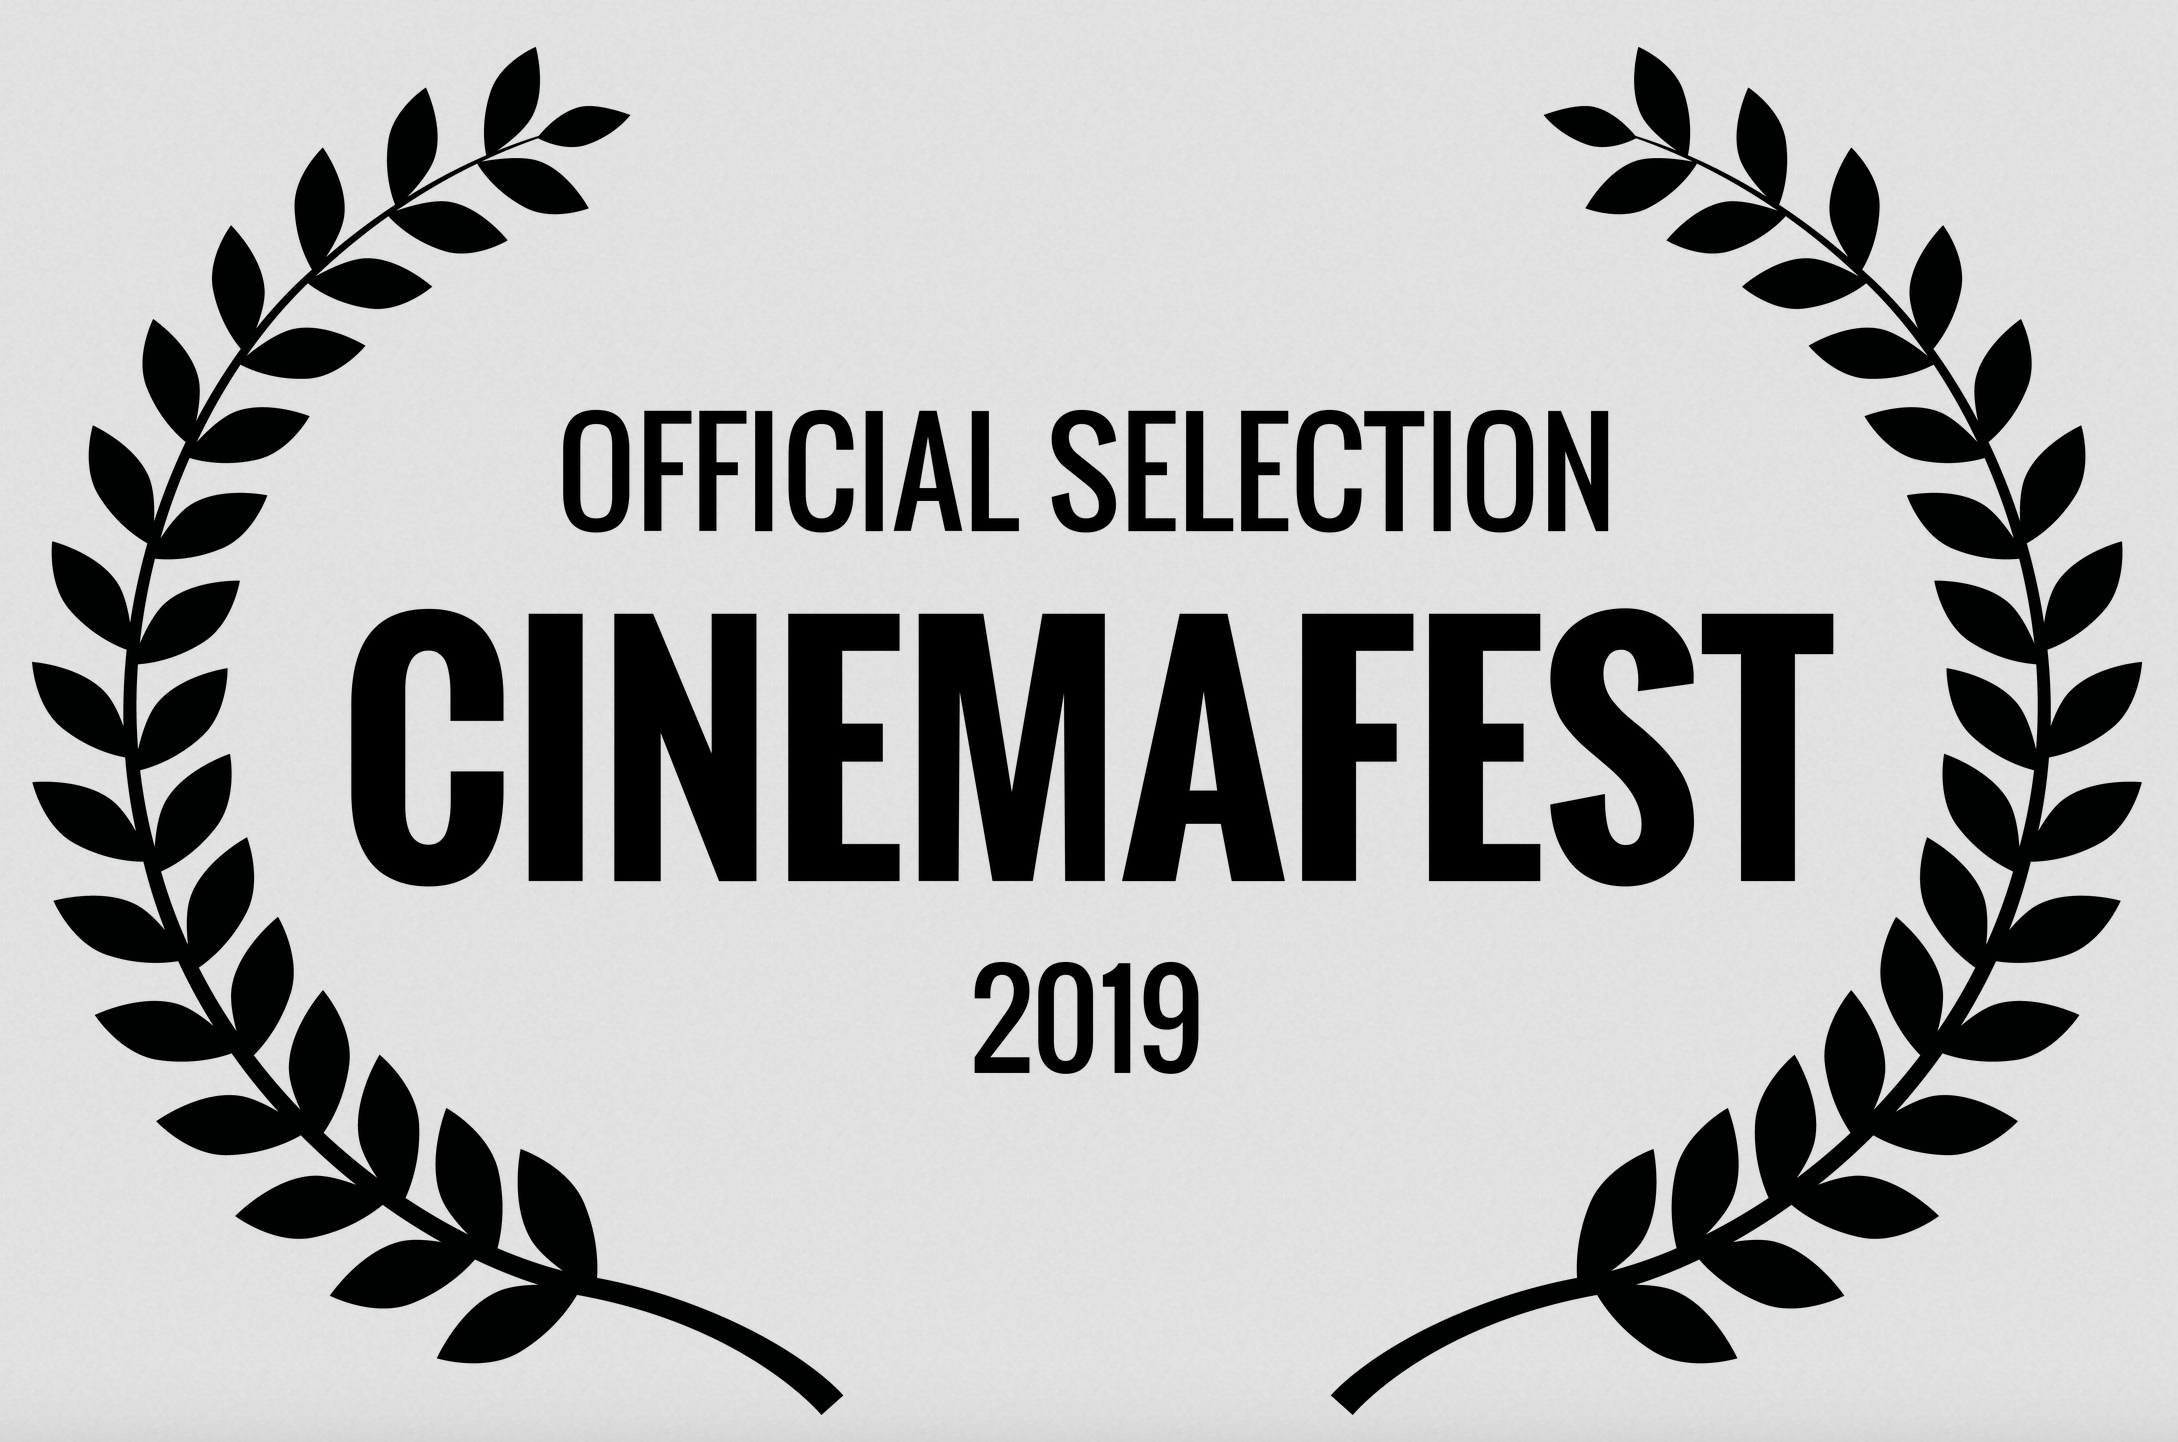 Cinemafest official selection